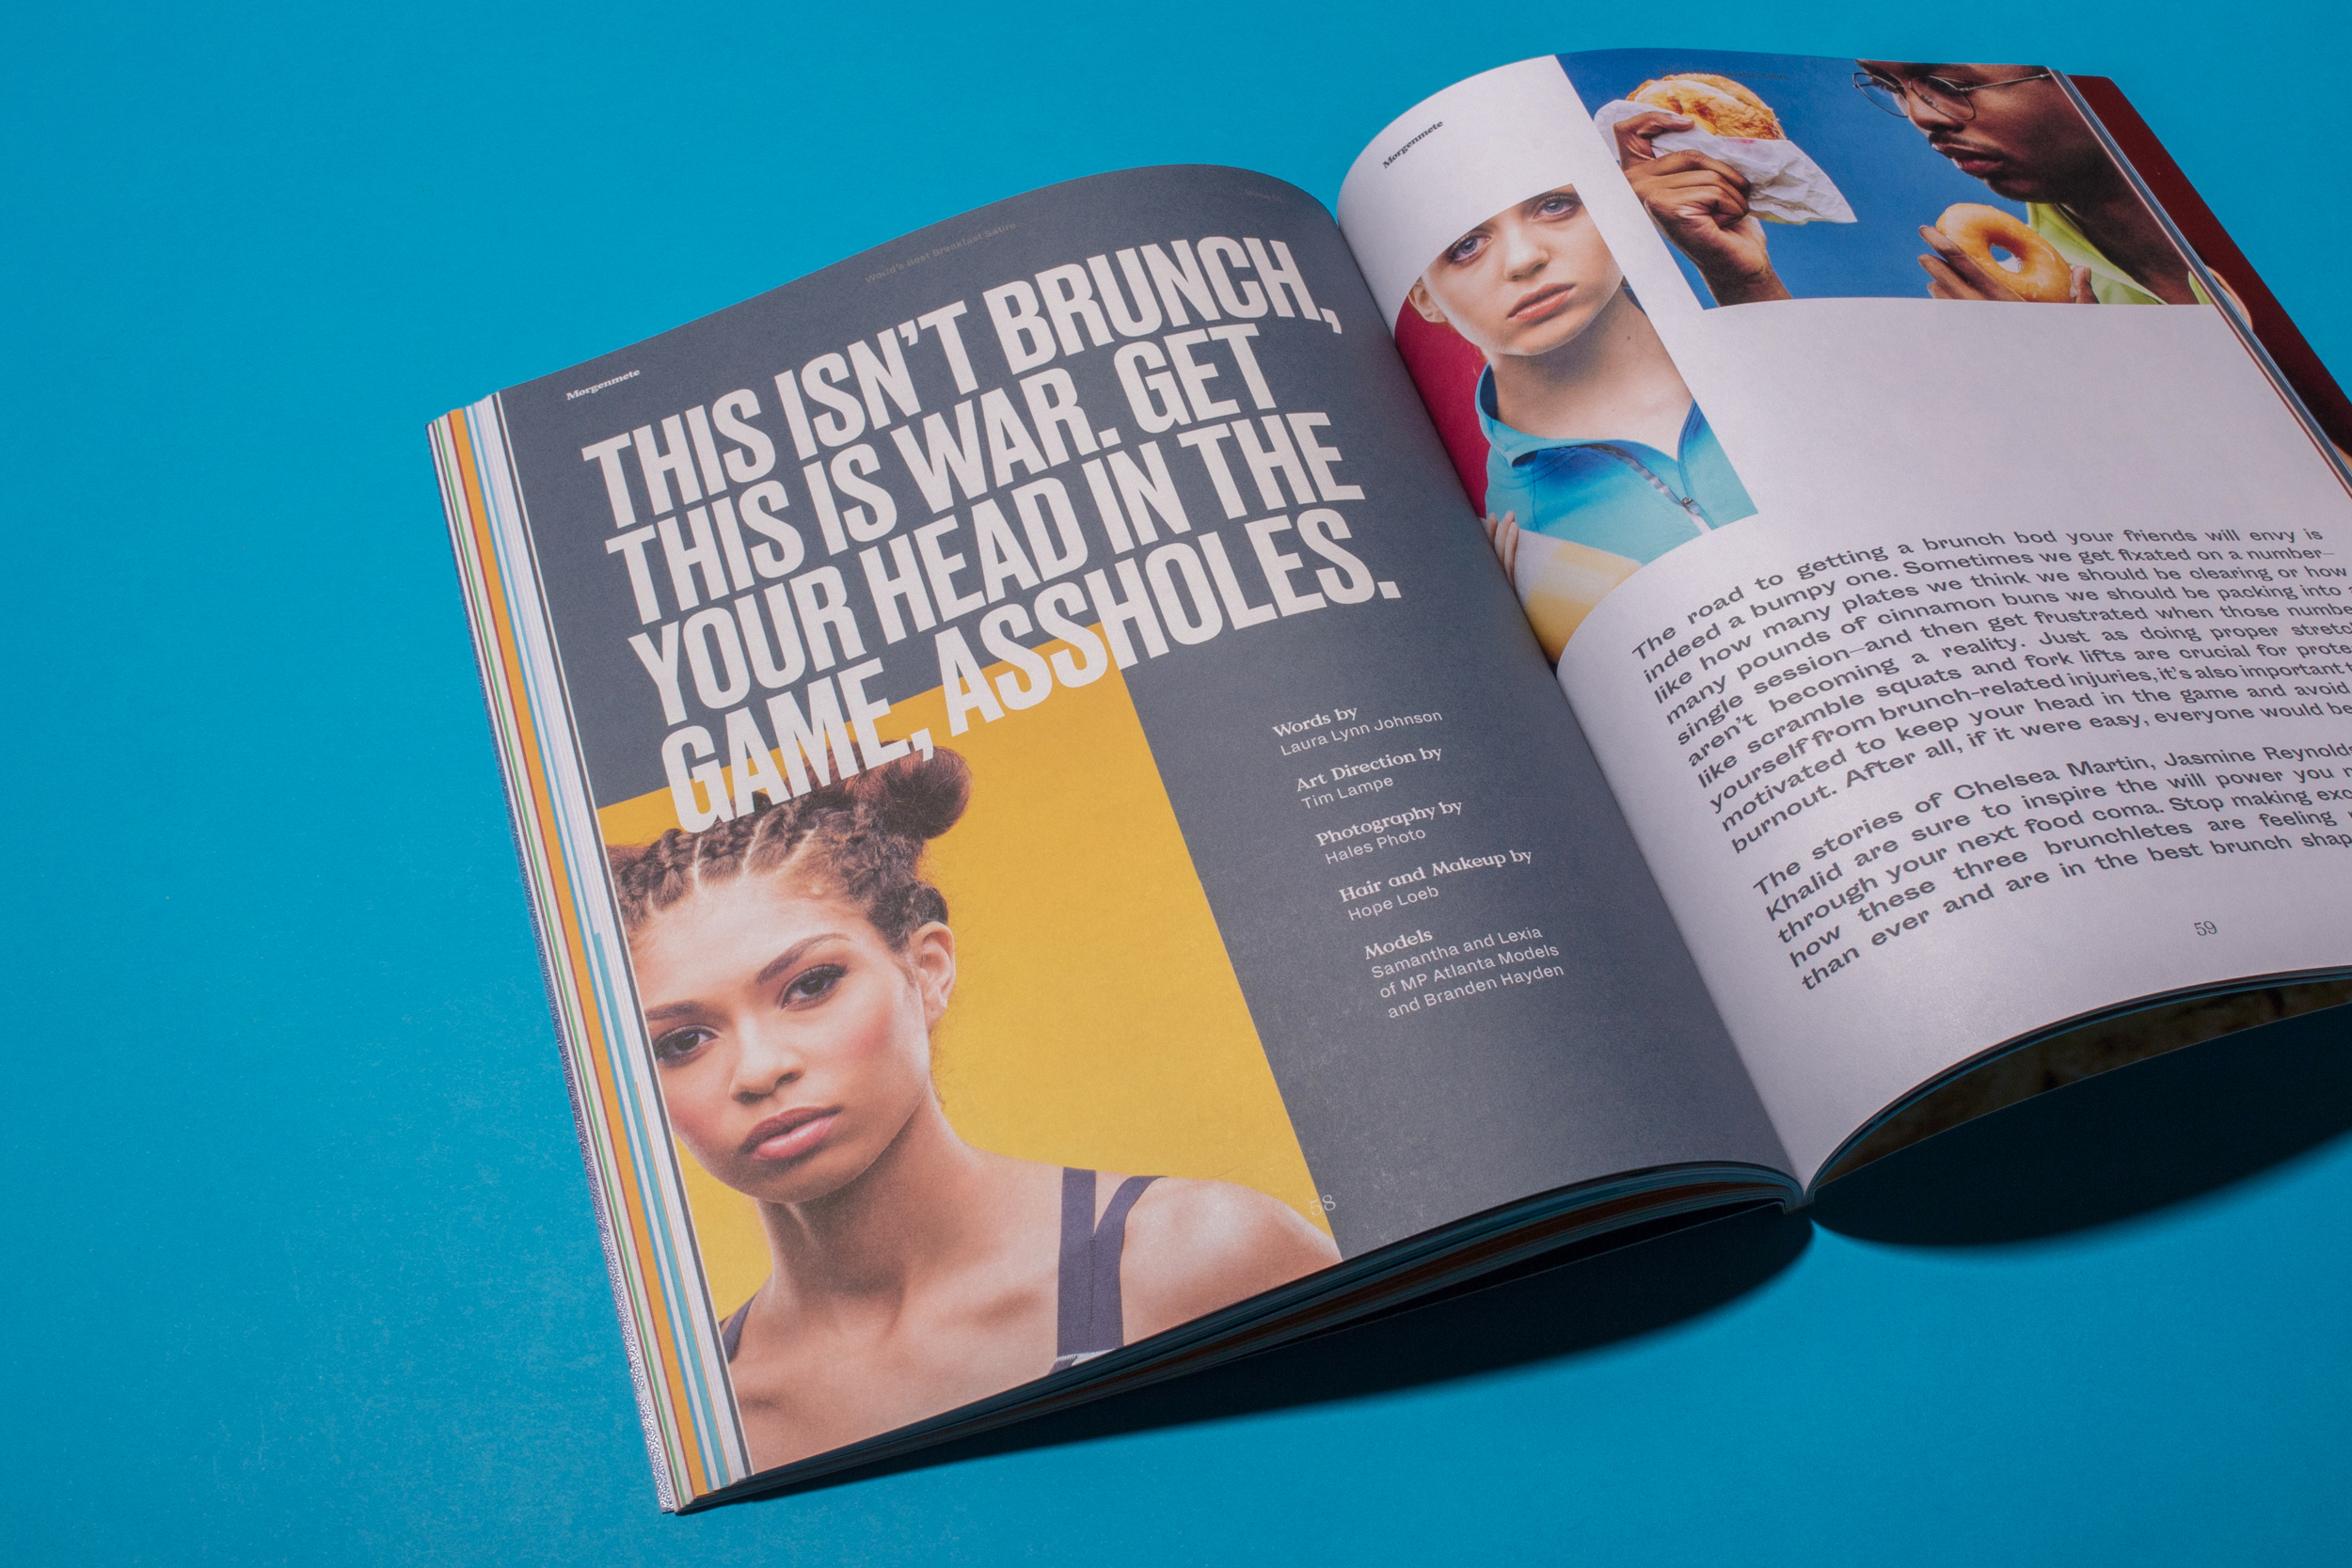 80 Pages of colorful art direction and original layout by Tim